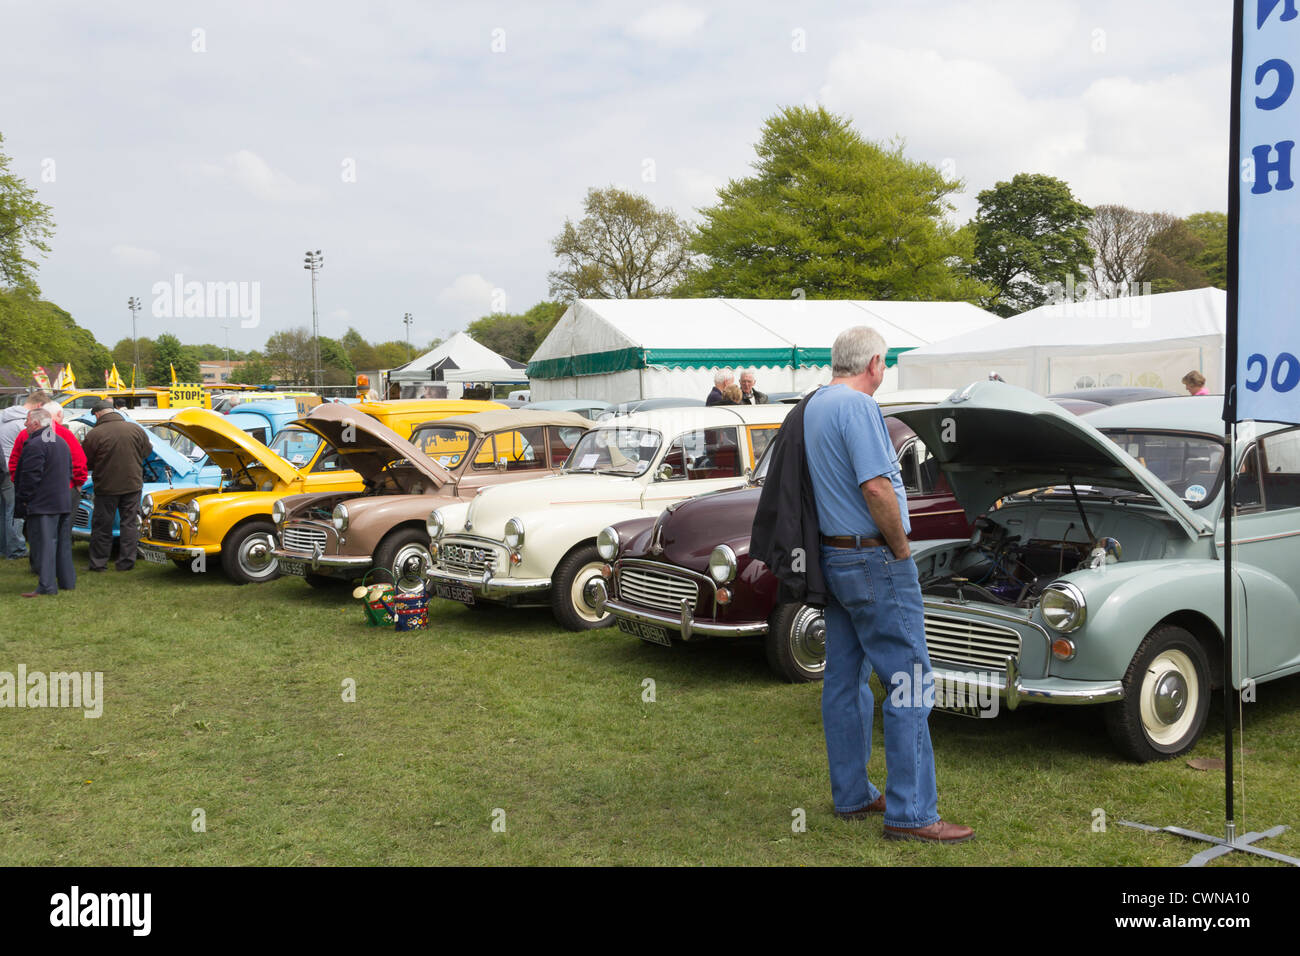 A line of Morris Minor classic cars on display at the Lancashire ...